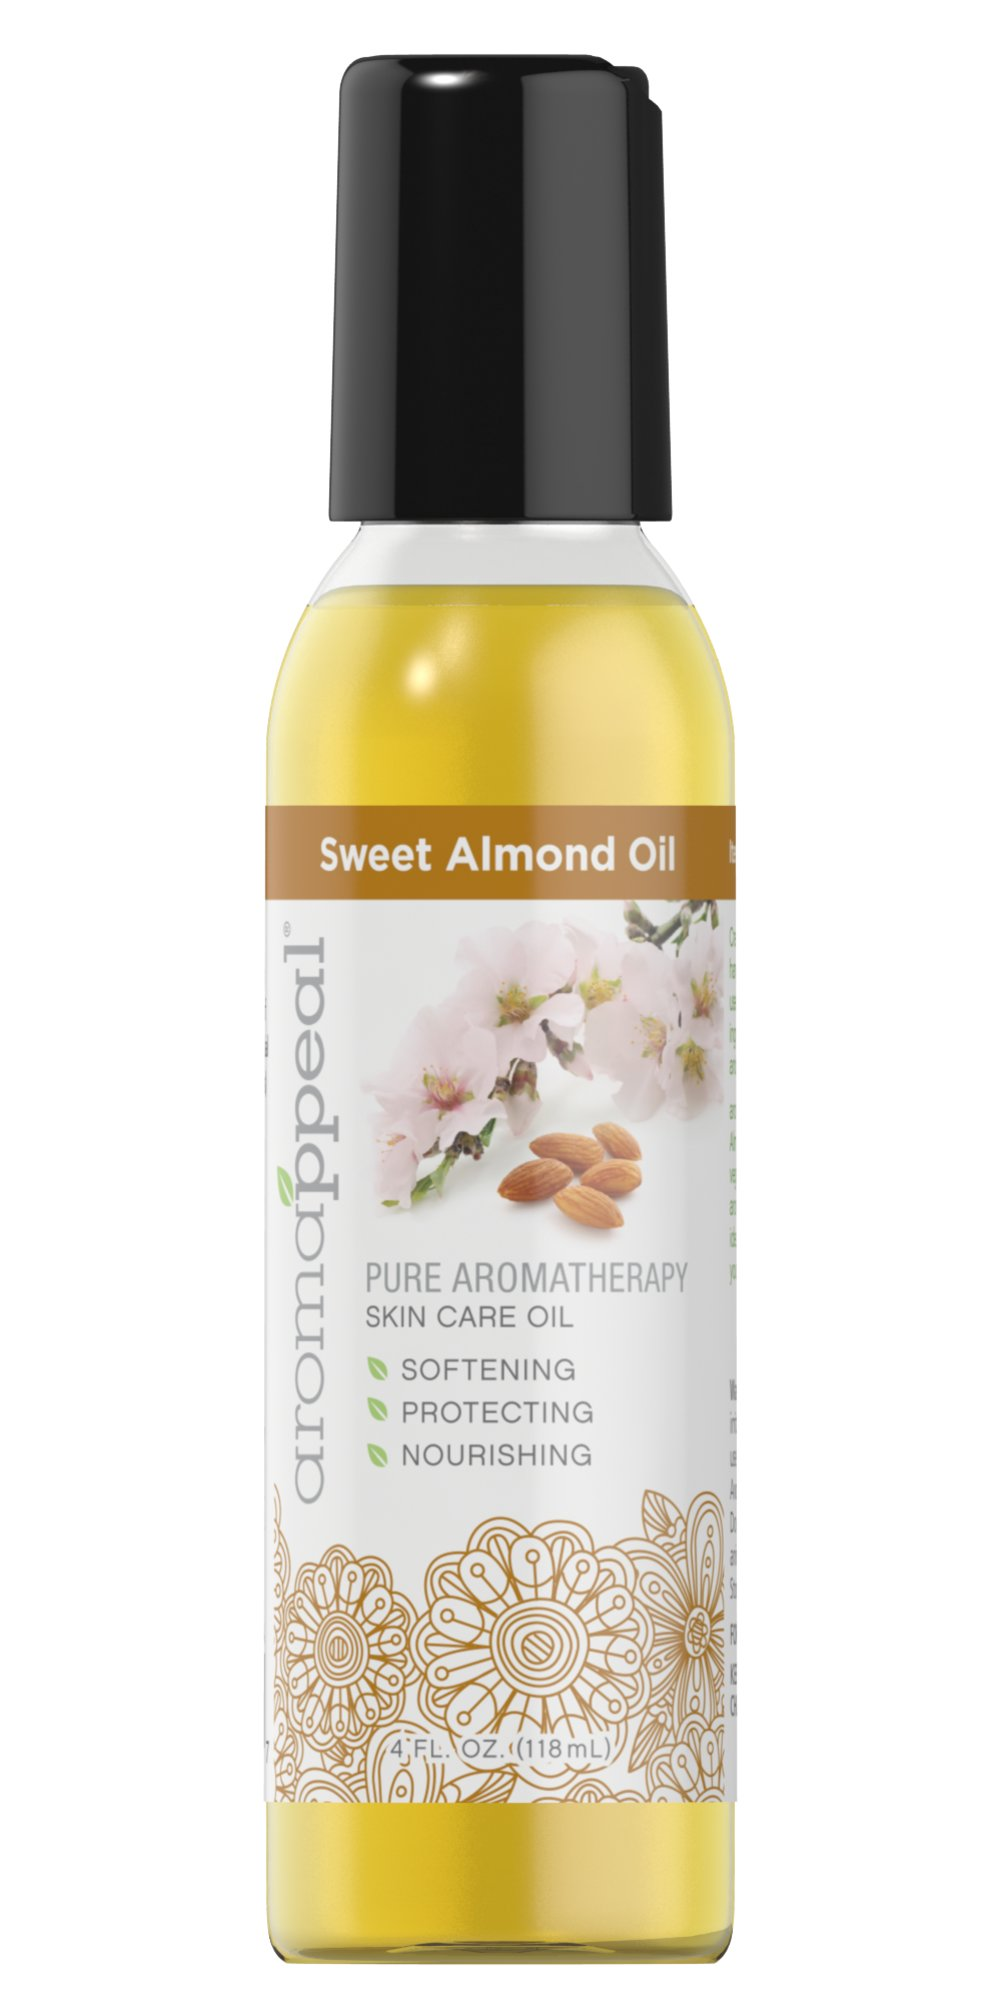 Sweet Almond Carrier Oil Thumbnail Alternate Bottle View